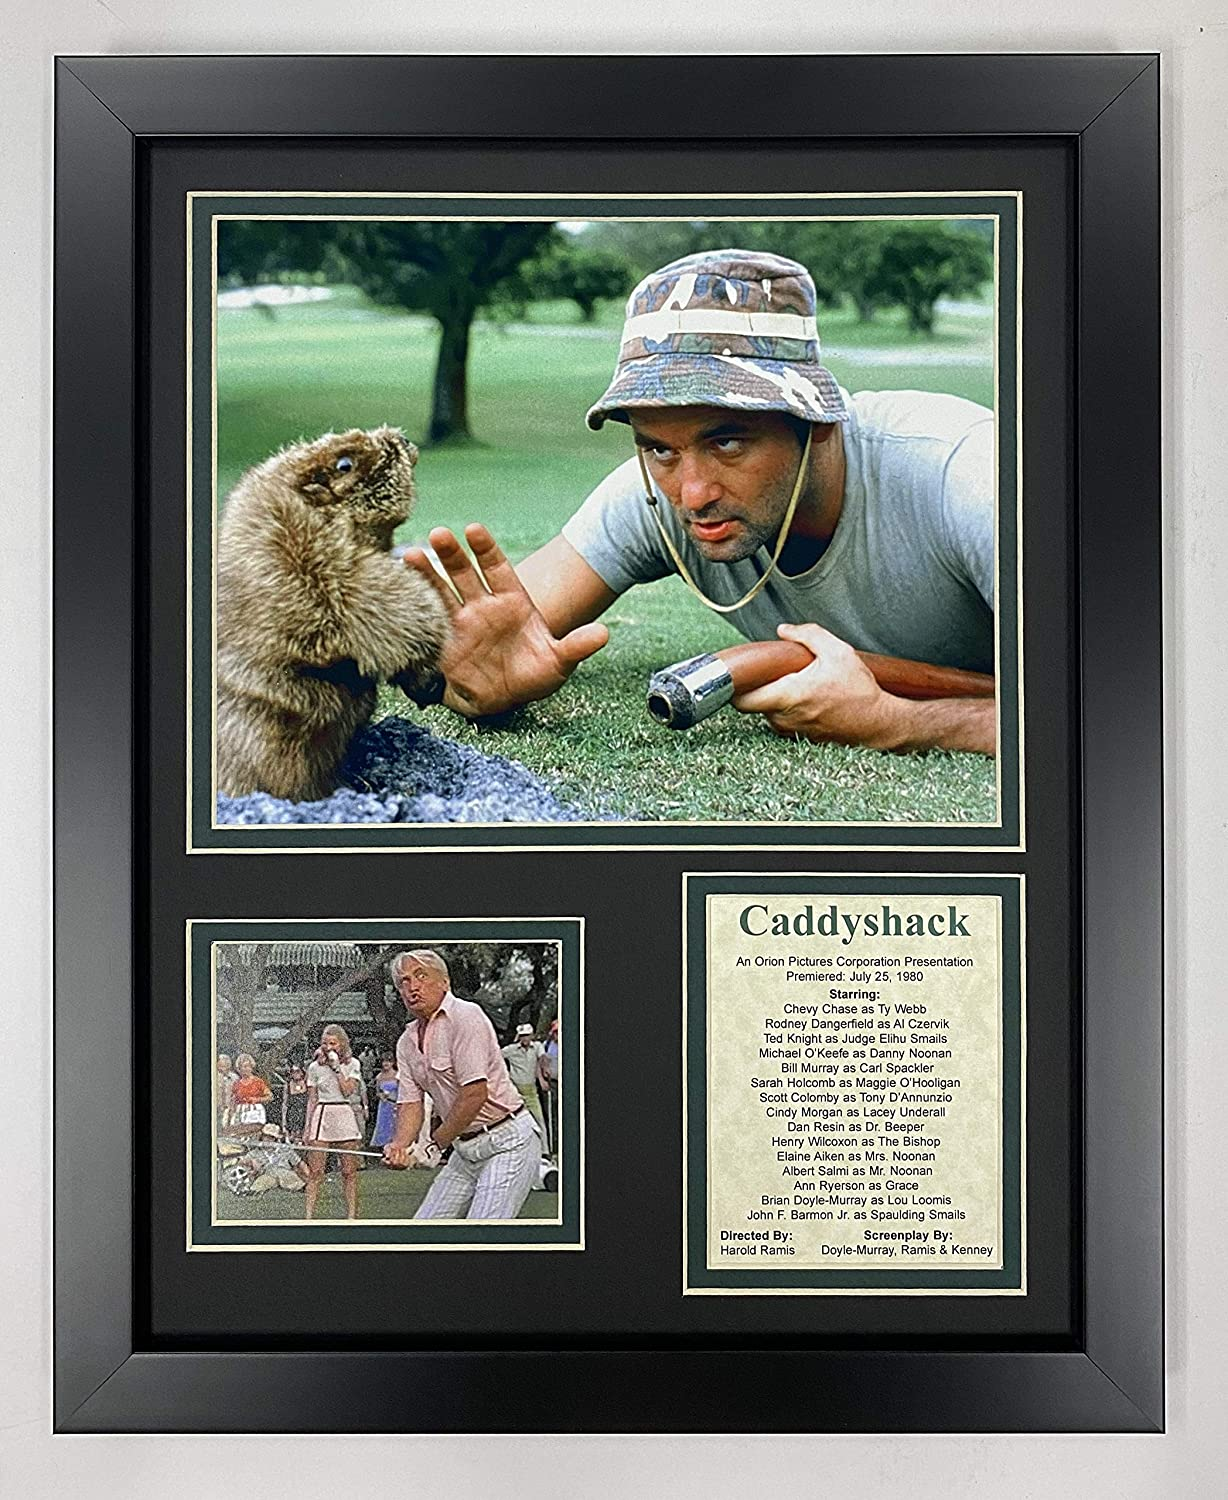 """Caddyshack 11"""" x 14"""" Framed Photo Collage by Legends Never Die, Inc."""